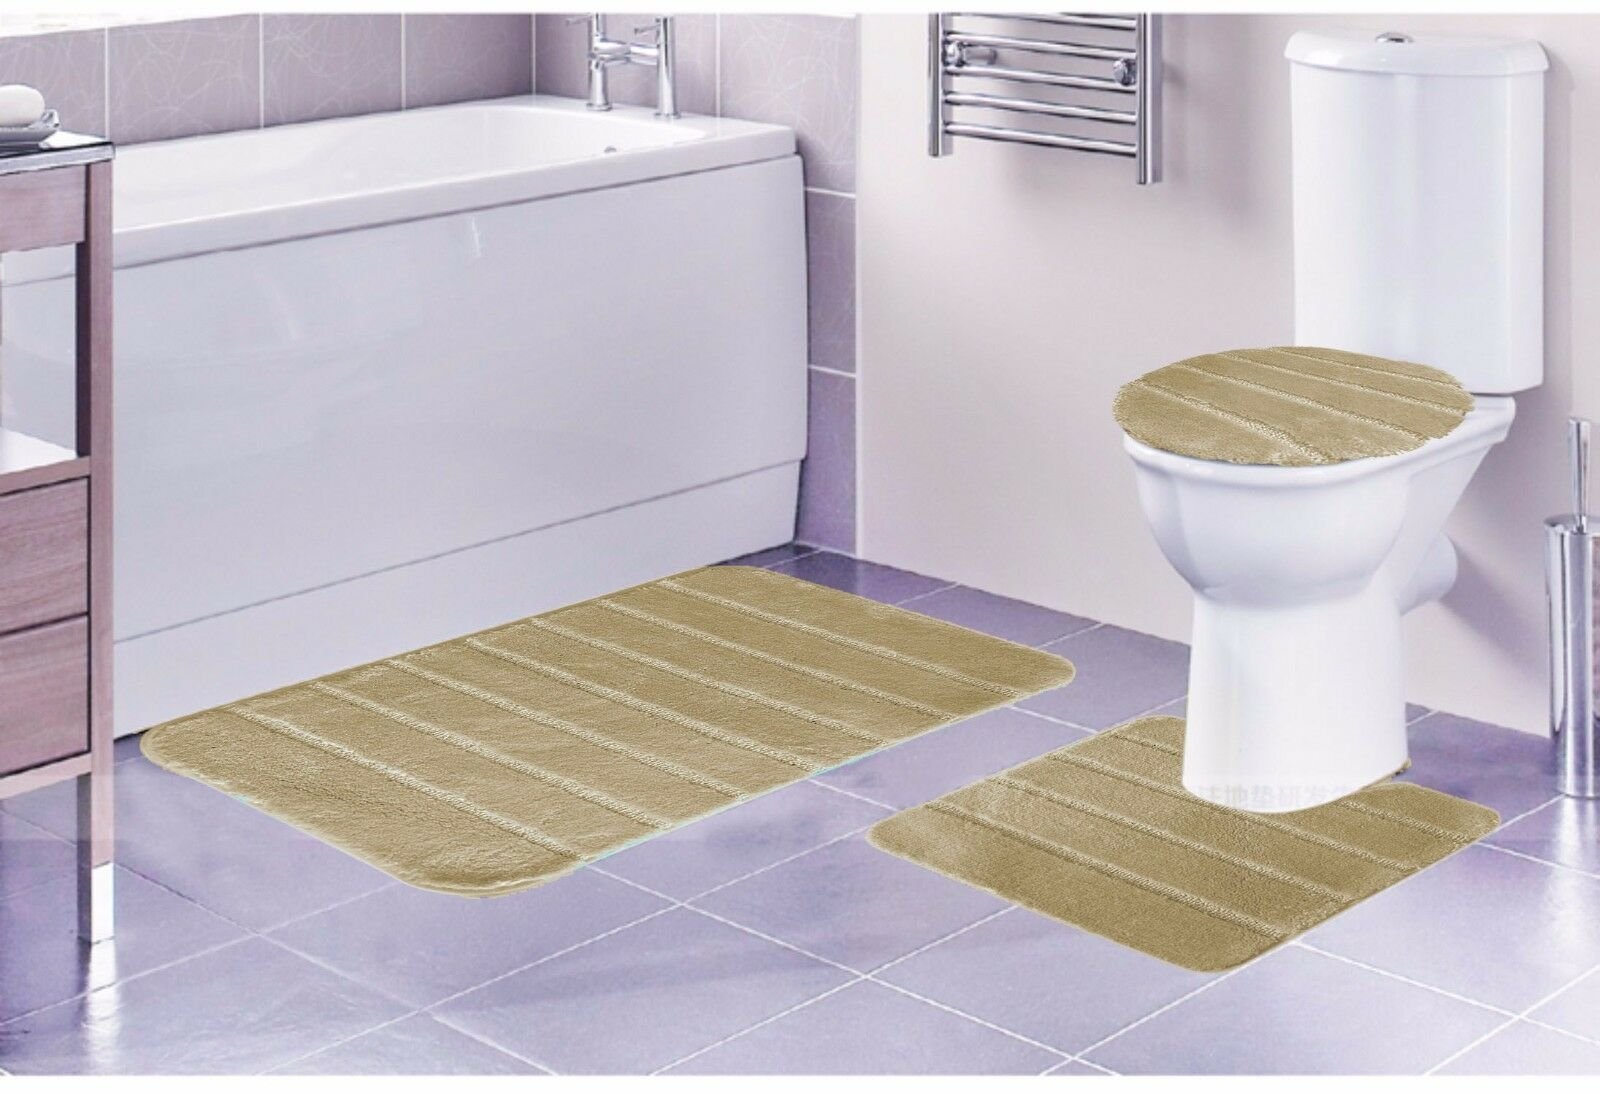 LOUISE 3 PIECE BATHROOM RUG SET BATHROOM RUG CONTOUR RUG